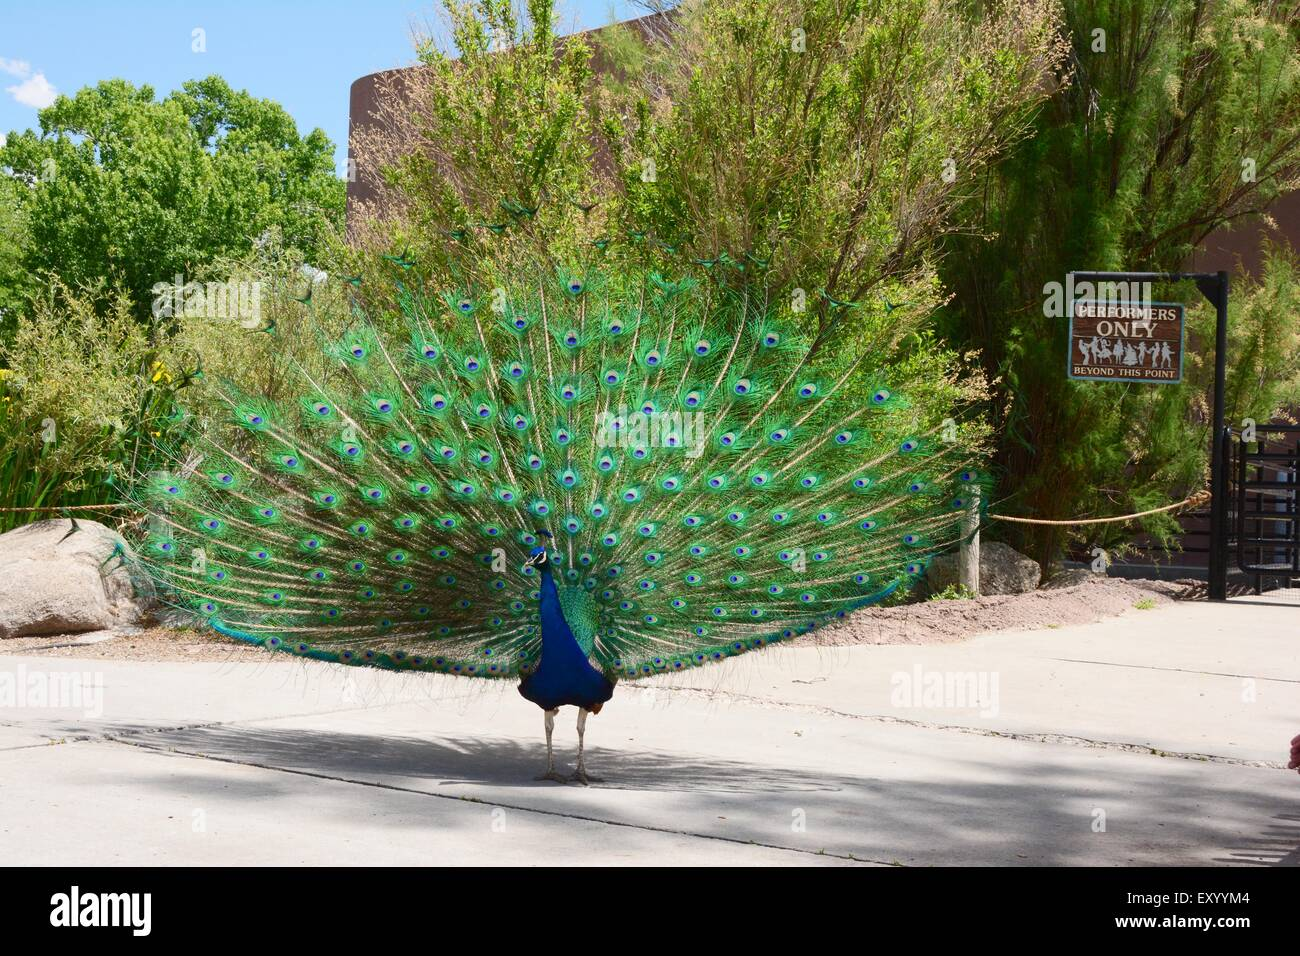 """Peacock Strutting his stuff in front of """"Performers Only"""" sign Albuquerque, New Mexico Zoo - USA Stock Photo"""